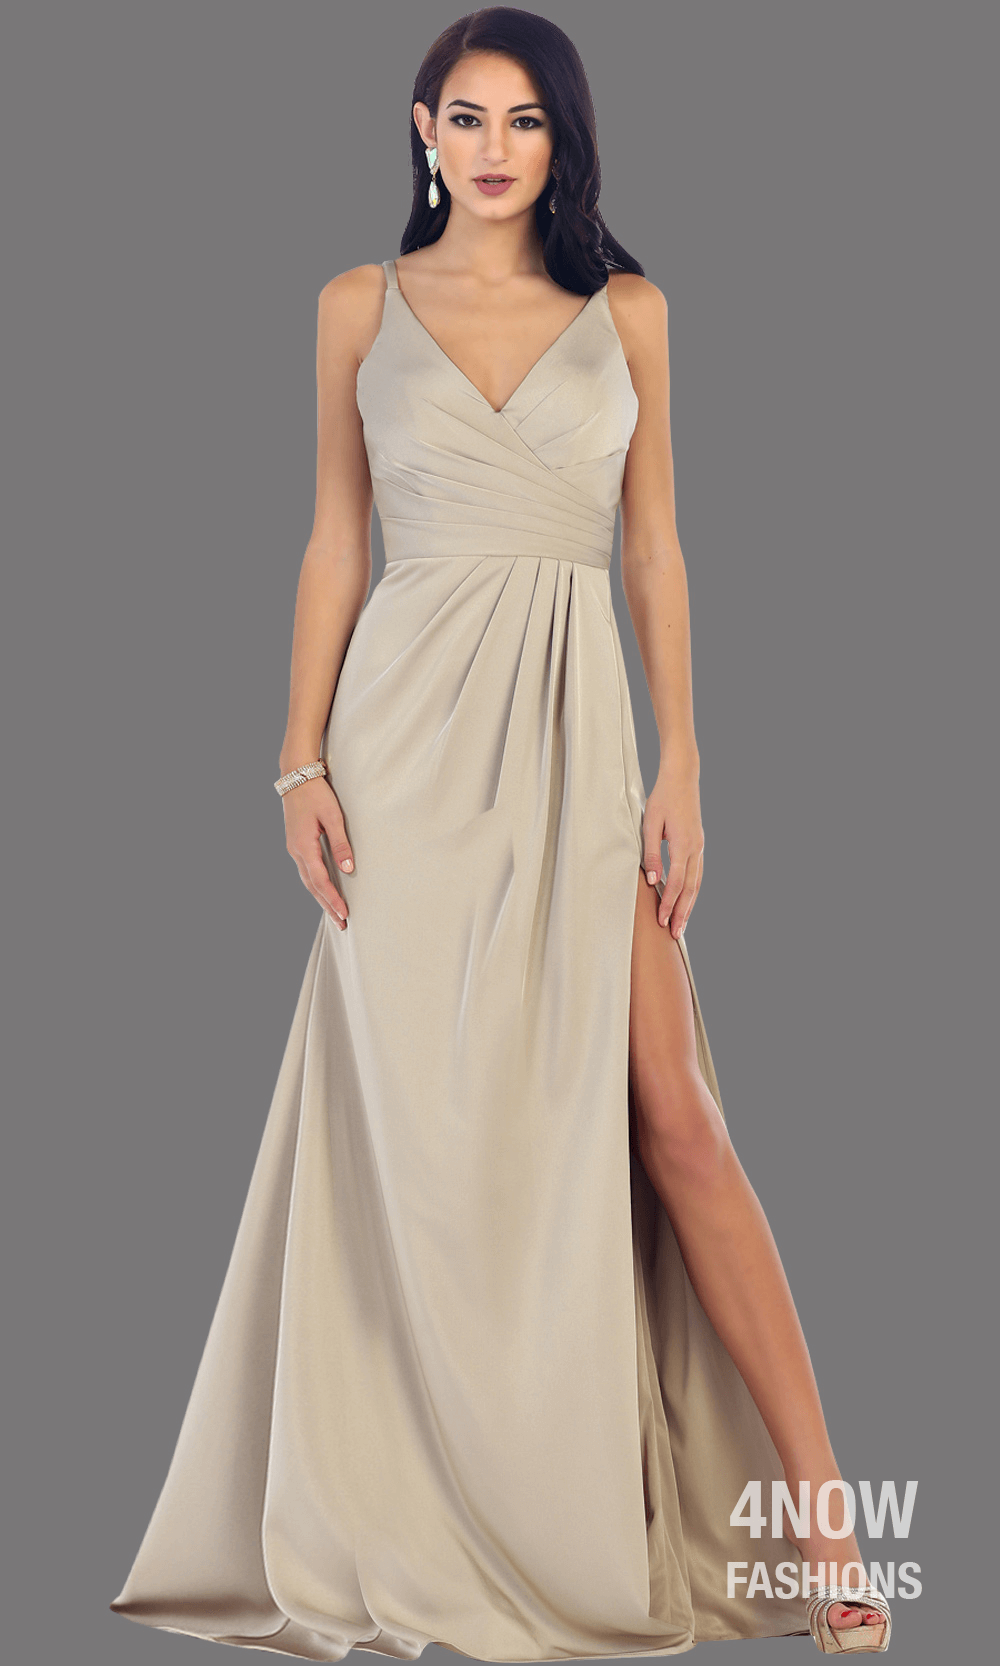 Silver High Slit Fitted Dress